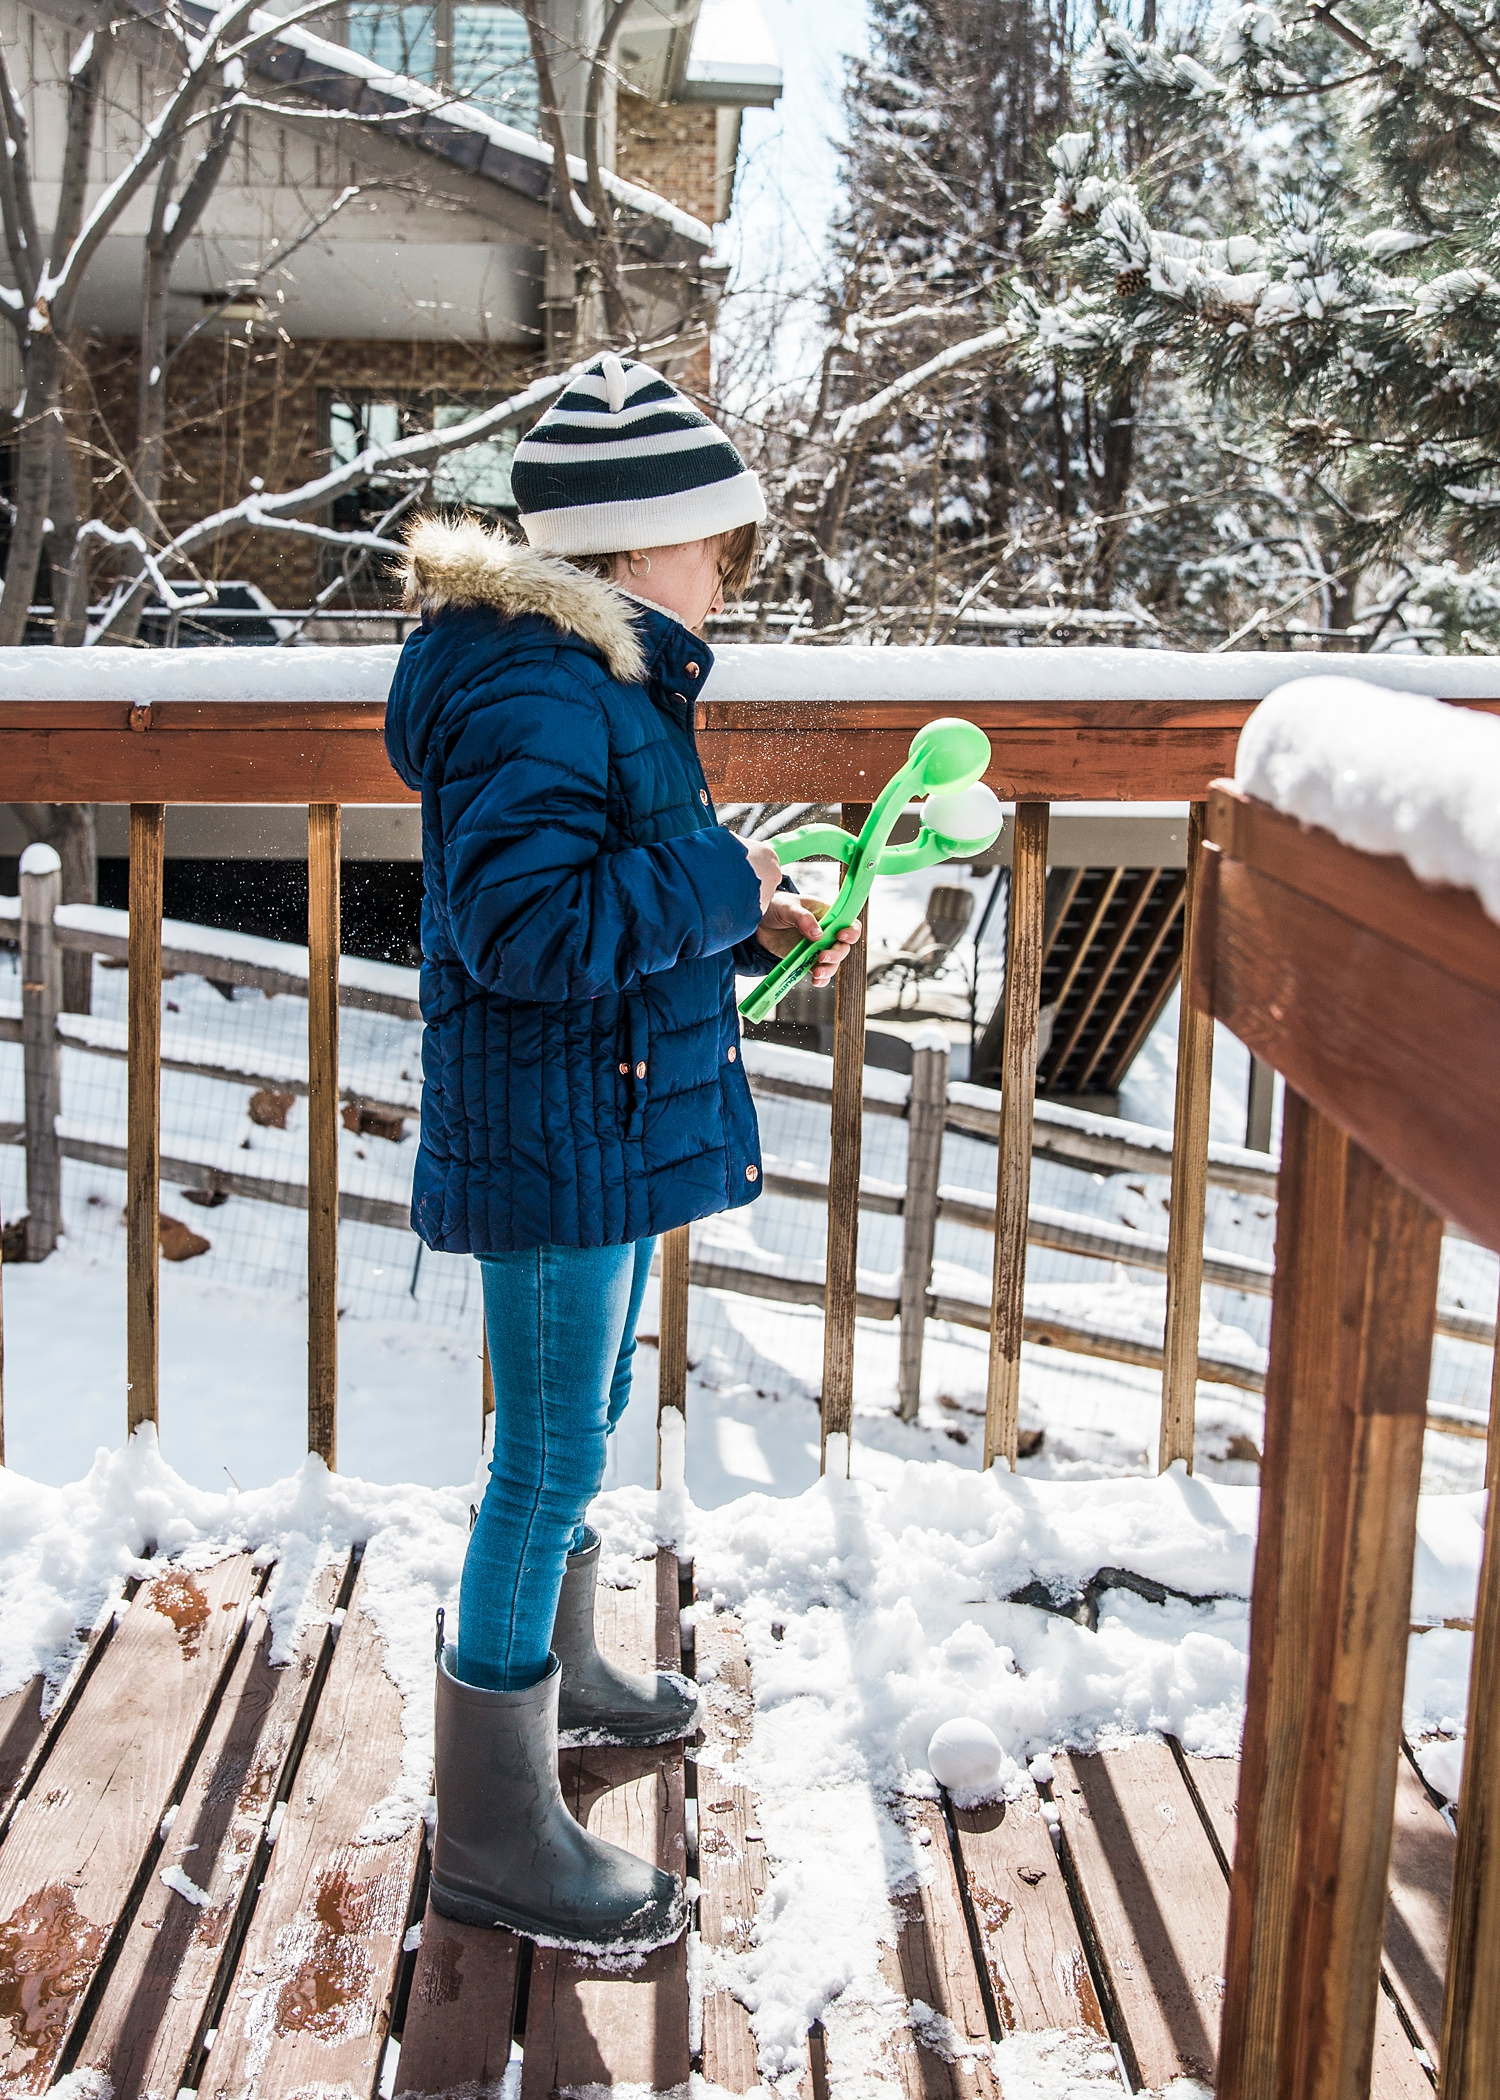 Ever wonder what unshcooling looks like? Go check out this photo diary: A Week in the Life of an Unschooler |Getting Unschooled is a family lifestyle blog about unschooling, over-40 style, and non-toxic beauty. Thanks for pinning!